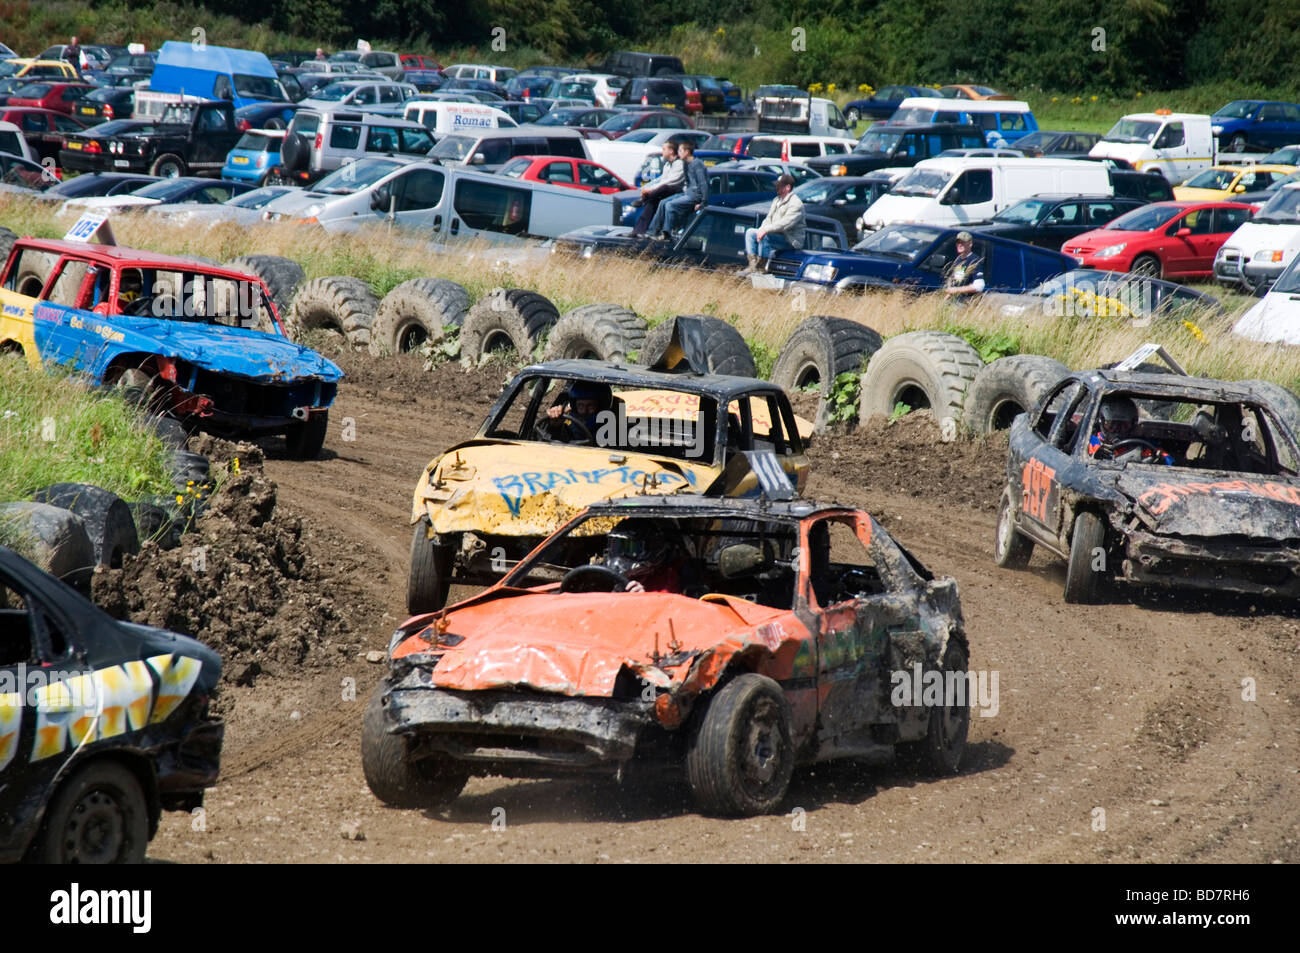 Car Crash Crashing Cars Banger Racing Stock Dirt Track Mud Muddy